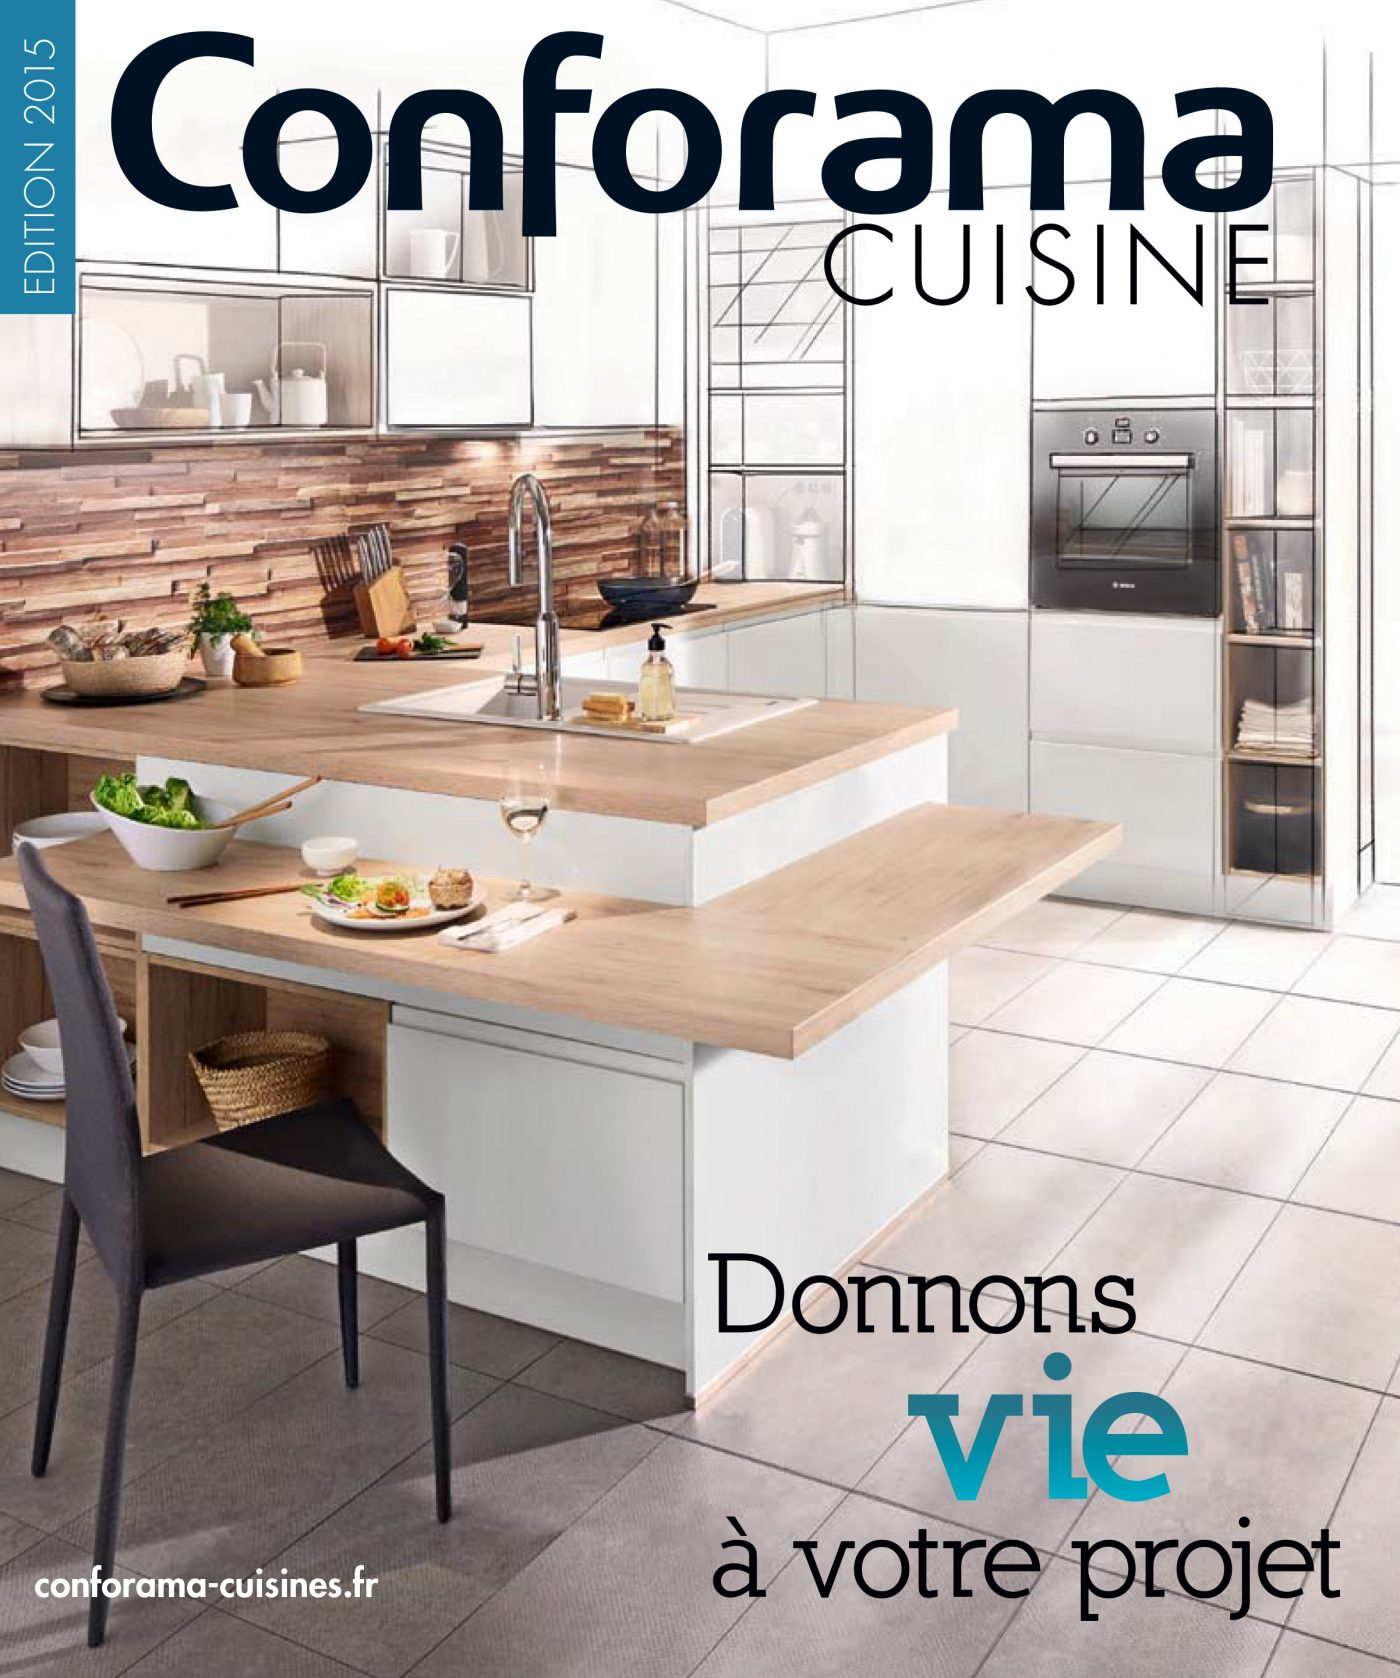 stylisme-catalogue-cuisine-conforama-04